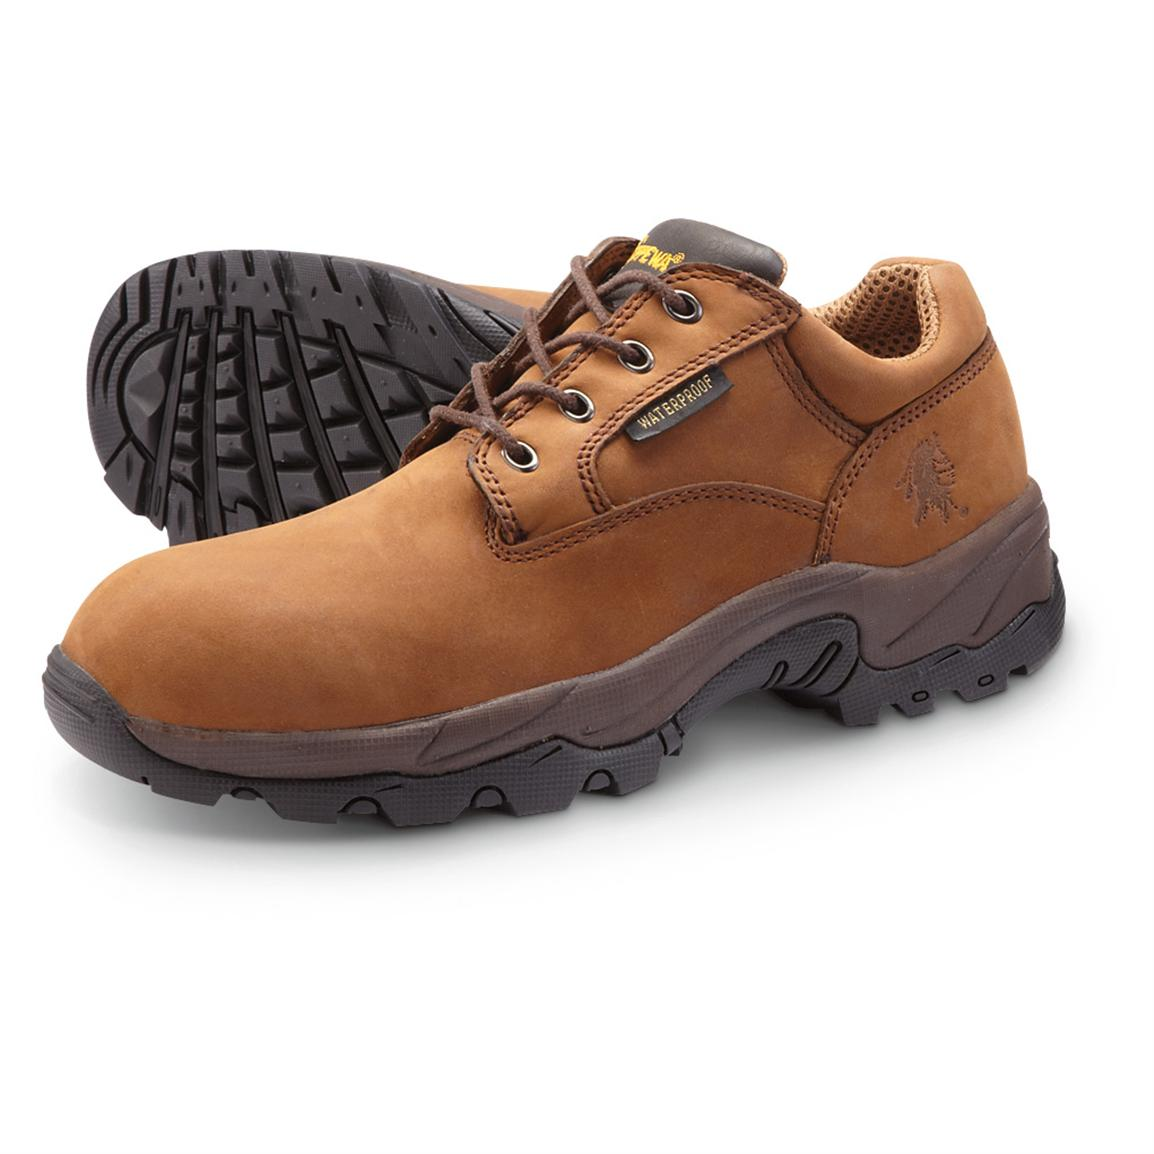 menu0027s chippewa boots waterproof oxford work shoes, brown gtdckuh